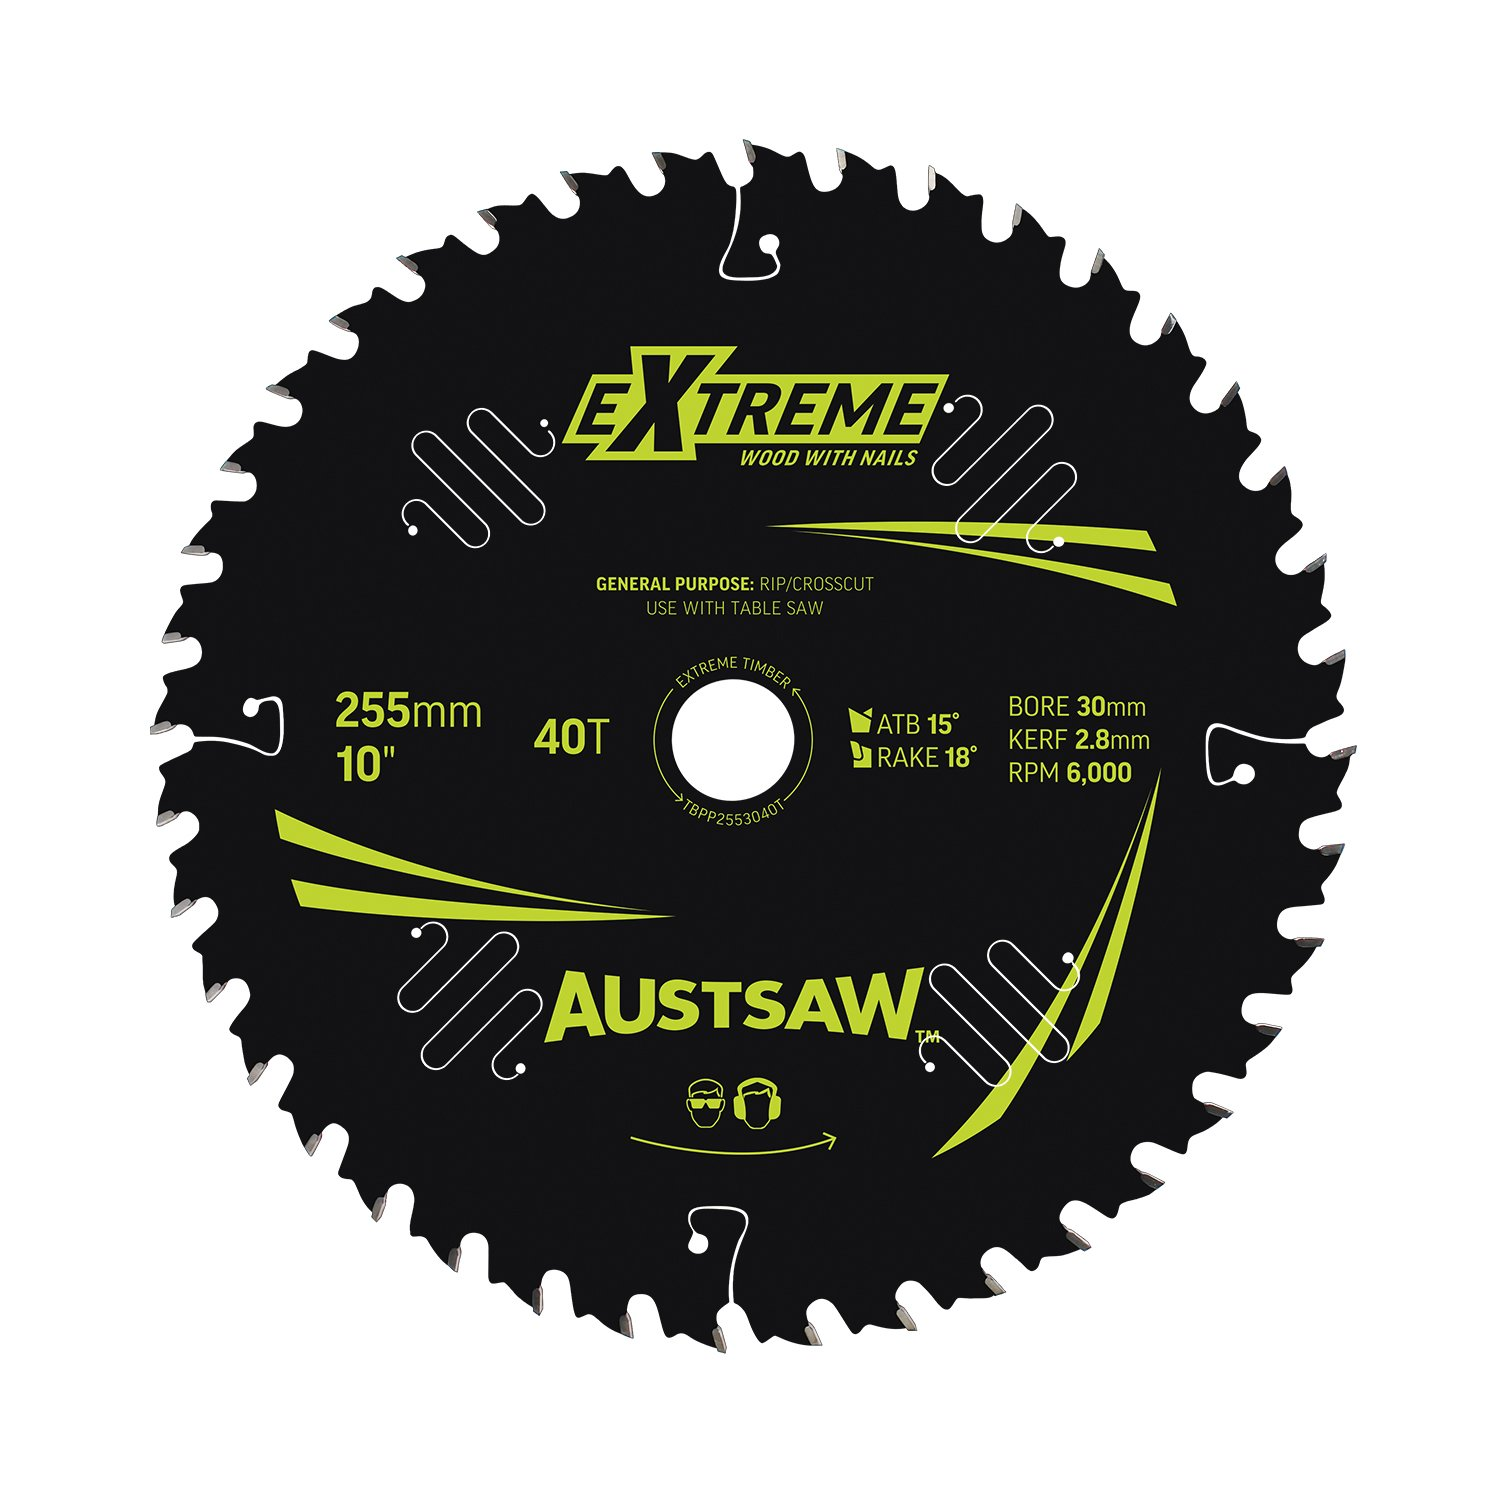 Austsaw Extreme: Wood with Nails Blade 255mm x 30 Bore x 40 T Table Saw